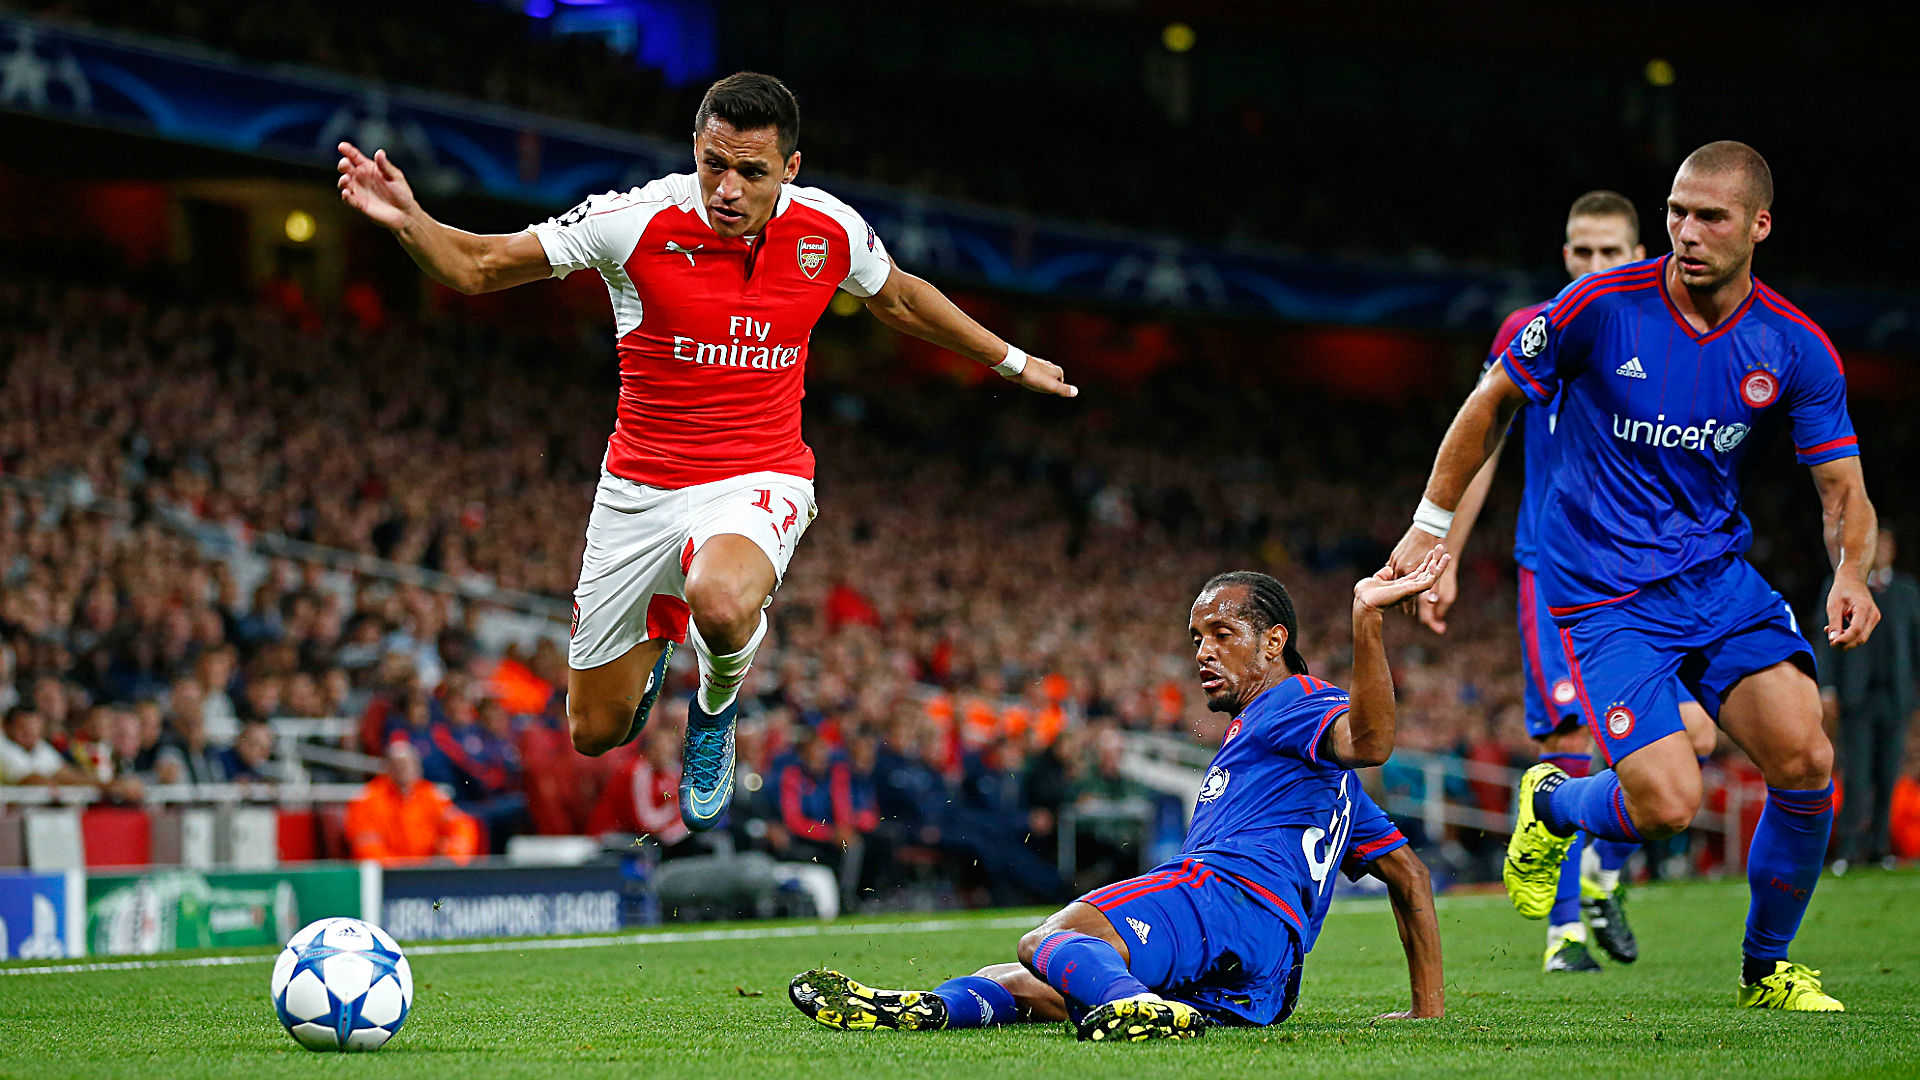 Manchester United vs. Arsenal odds and pick - Goals will come late